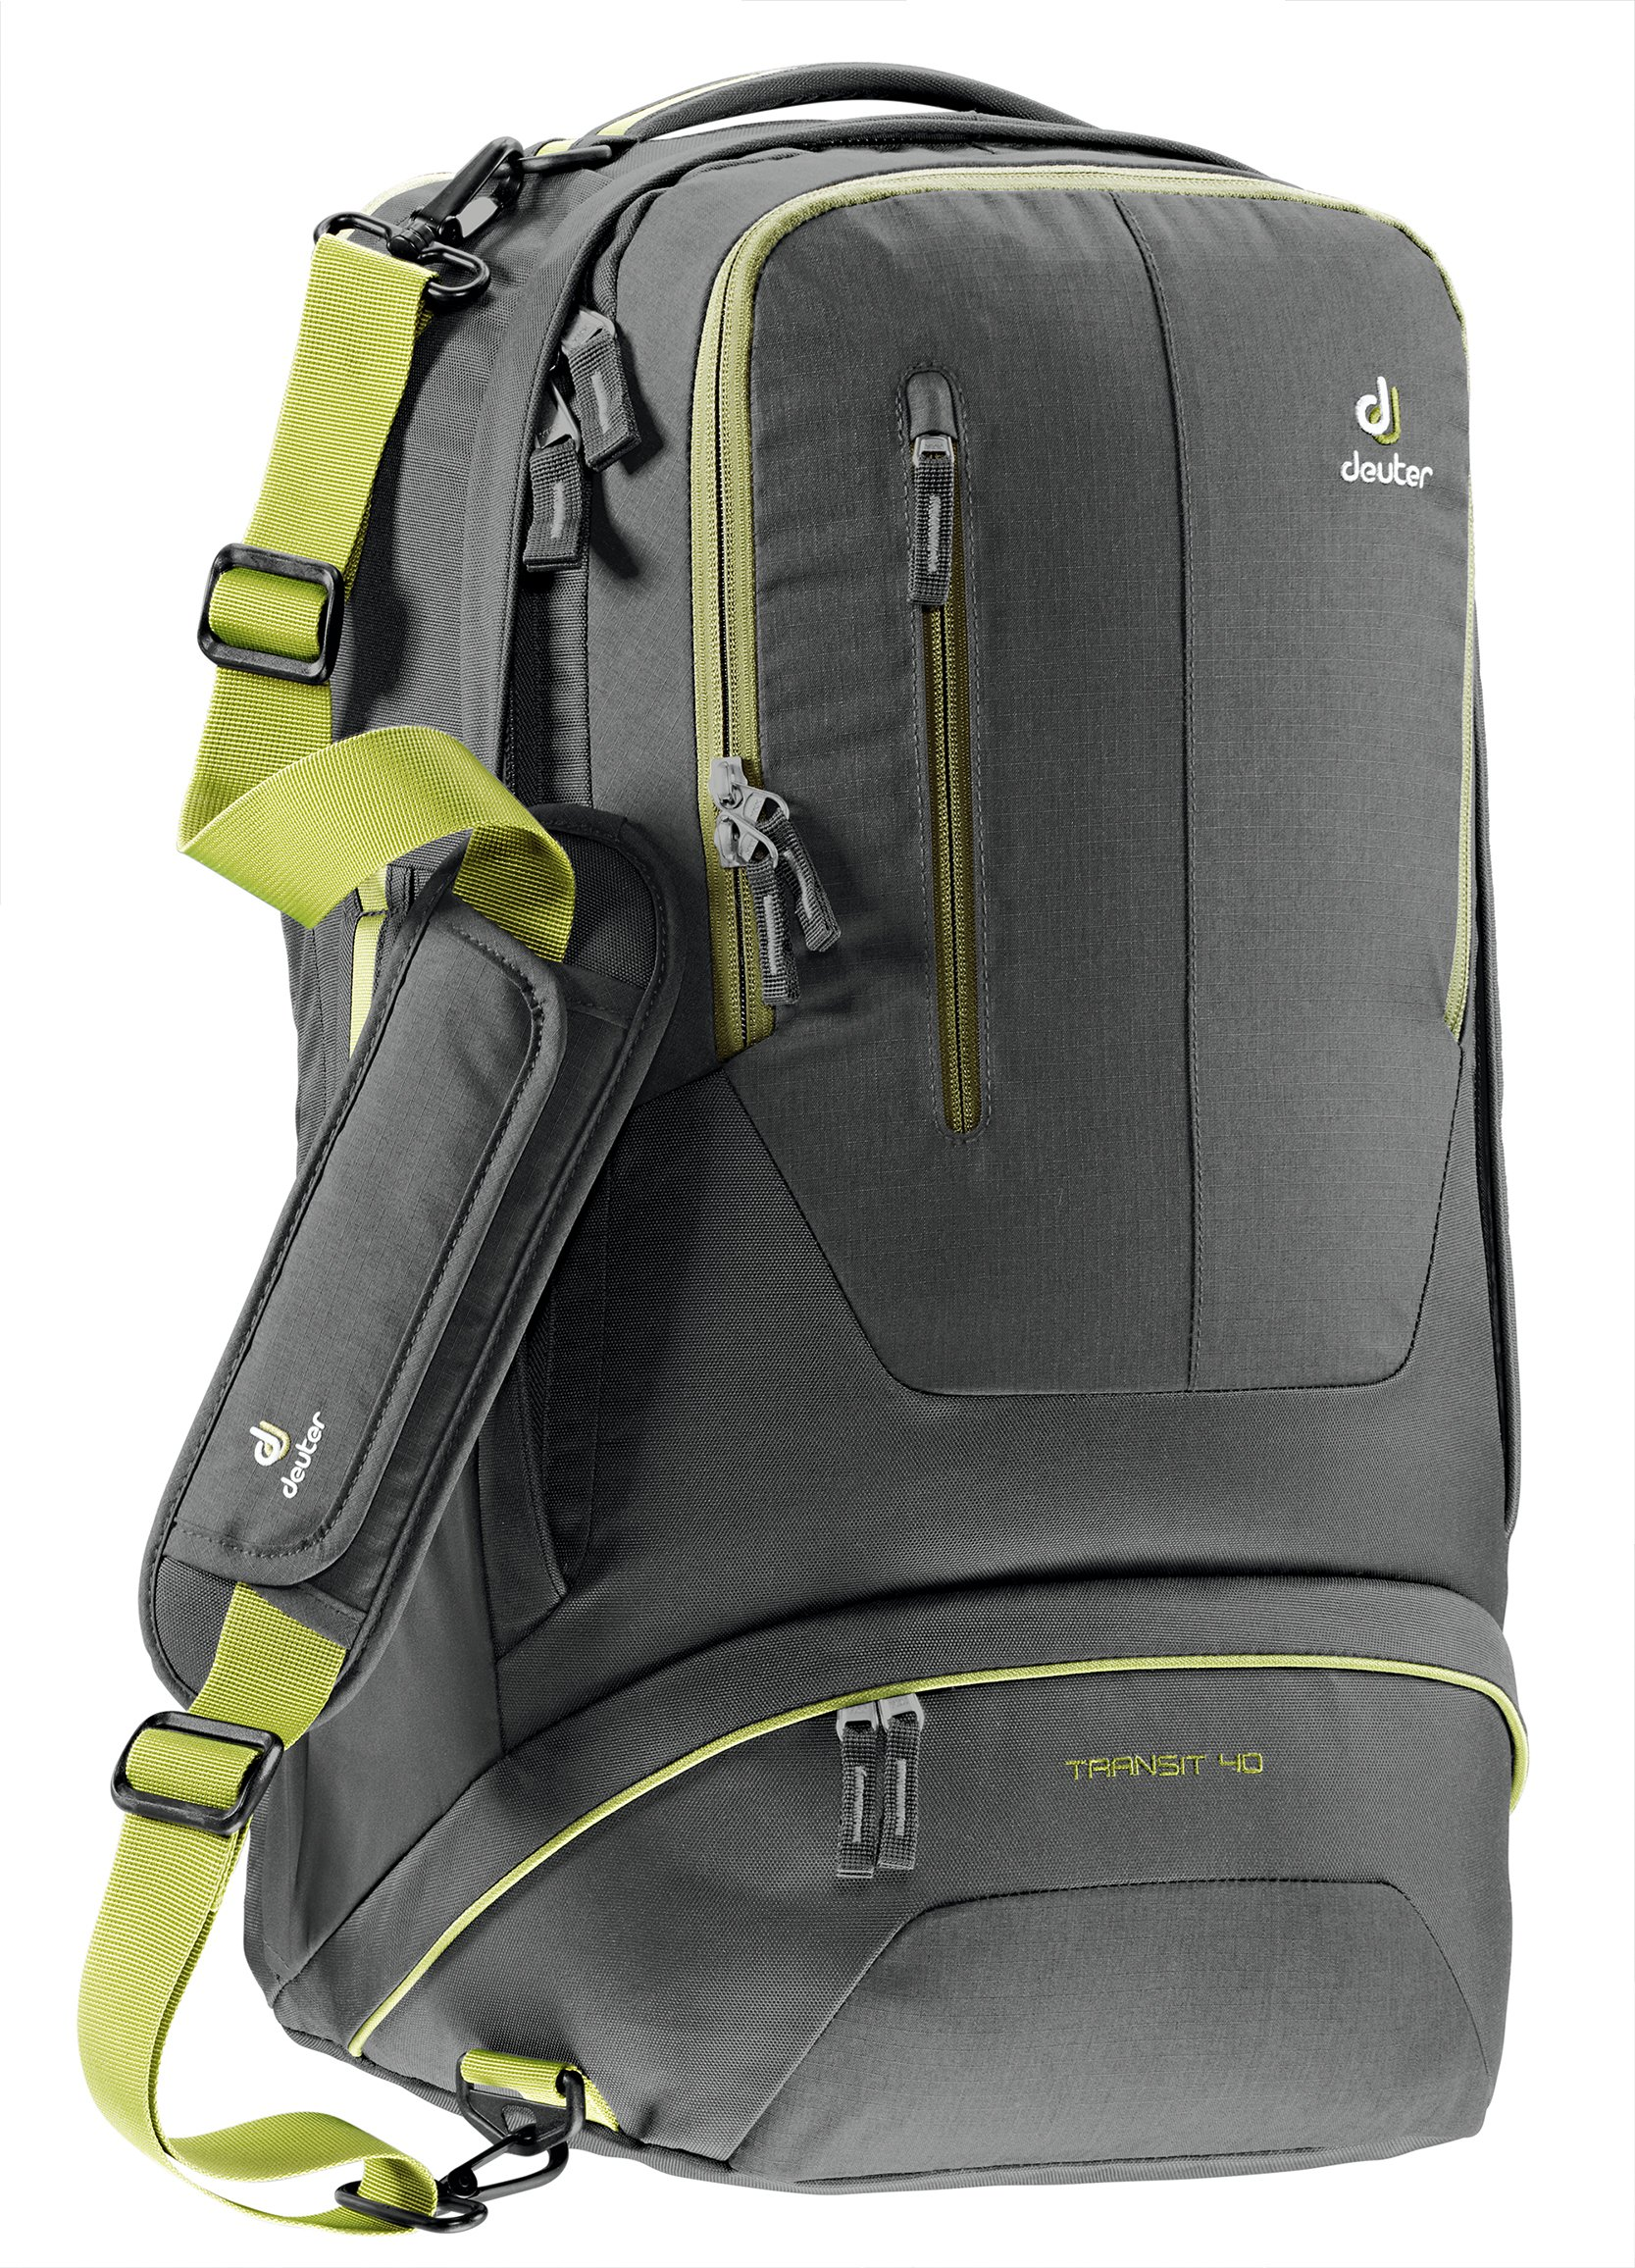 Deuter Transit 40 Carry-On Travel Backpack, Anthracite/Moss